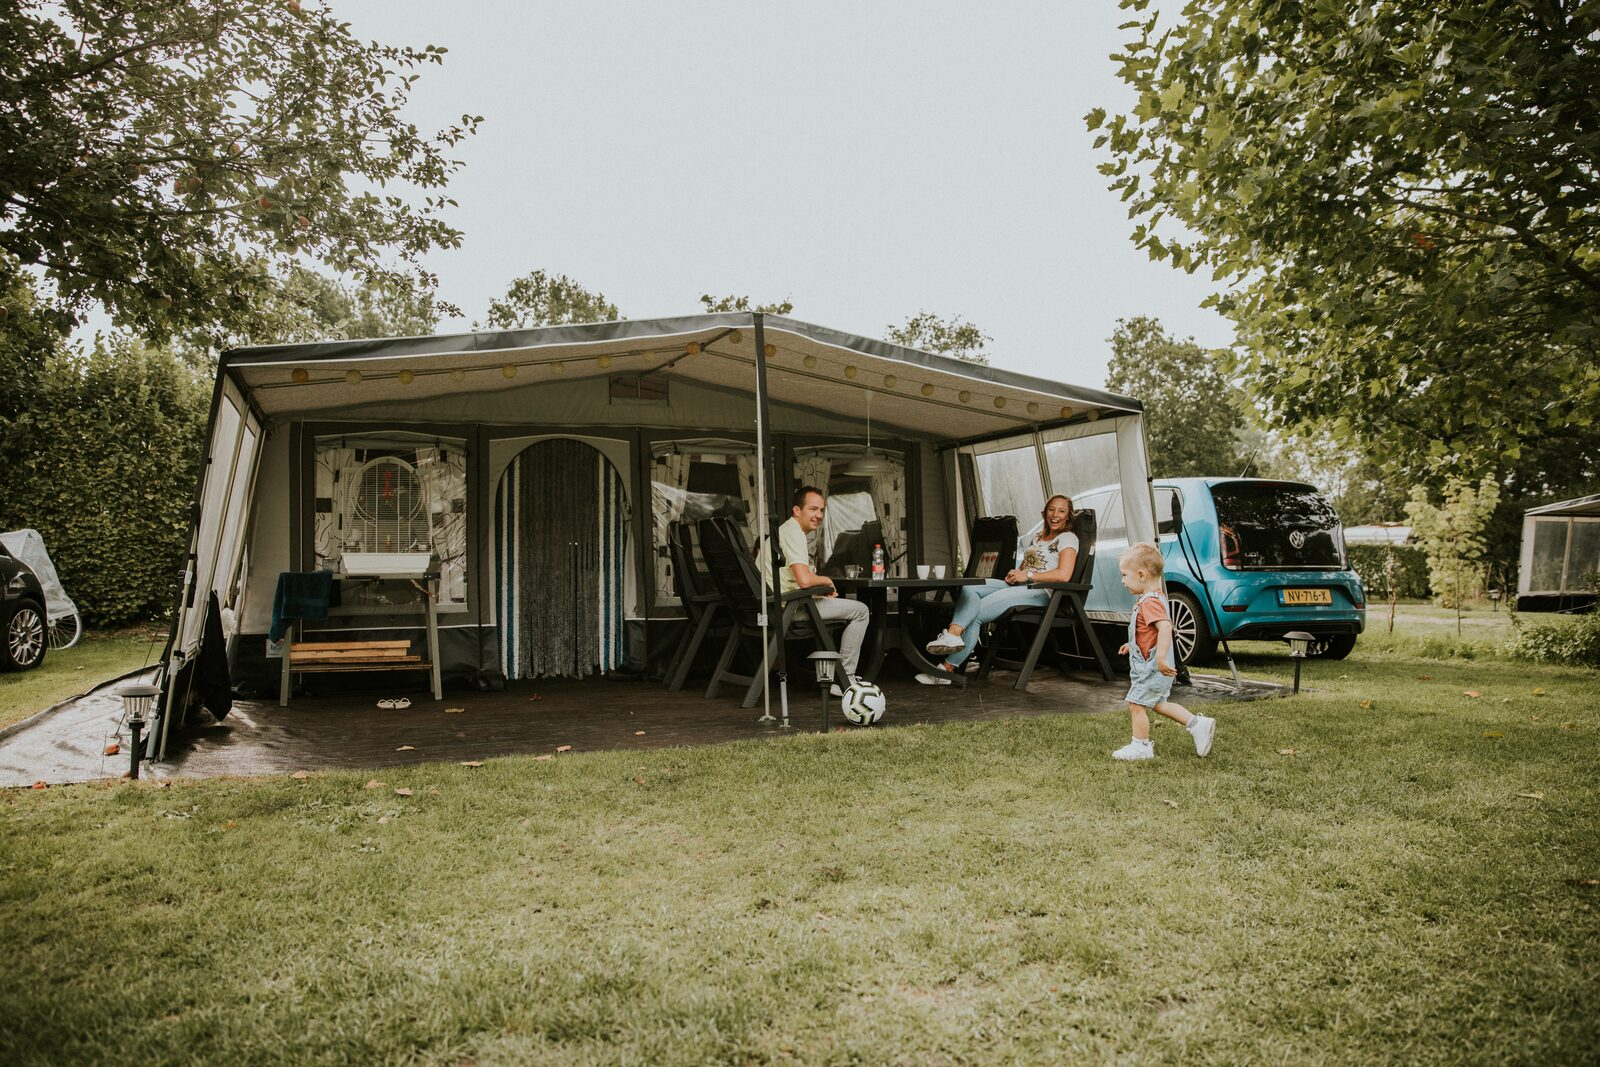 Charme camping